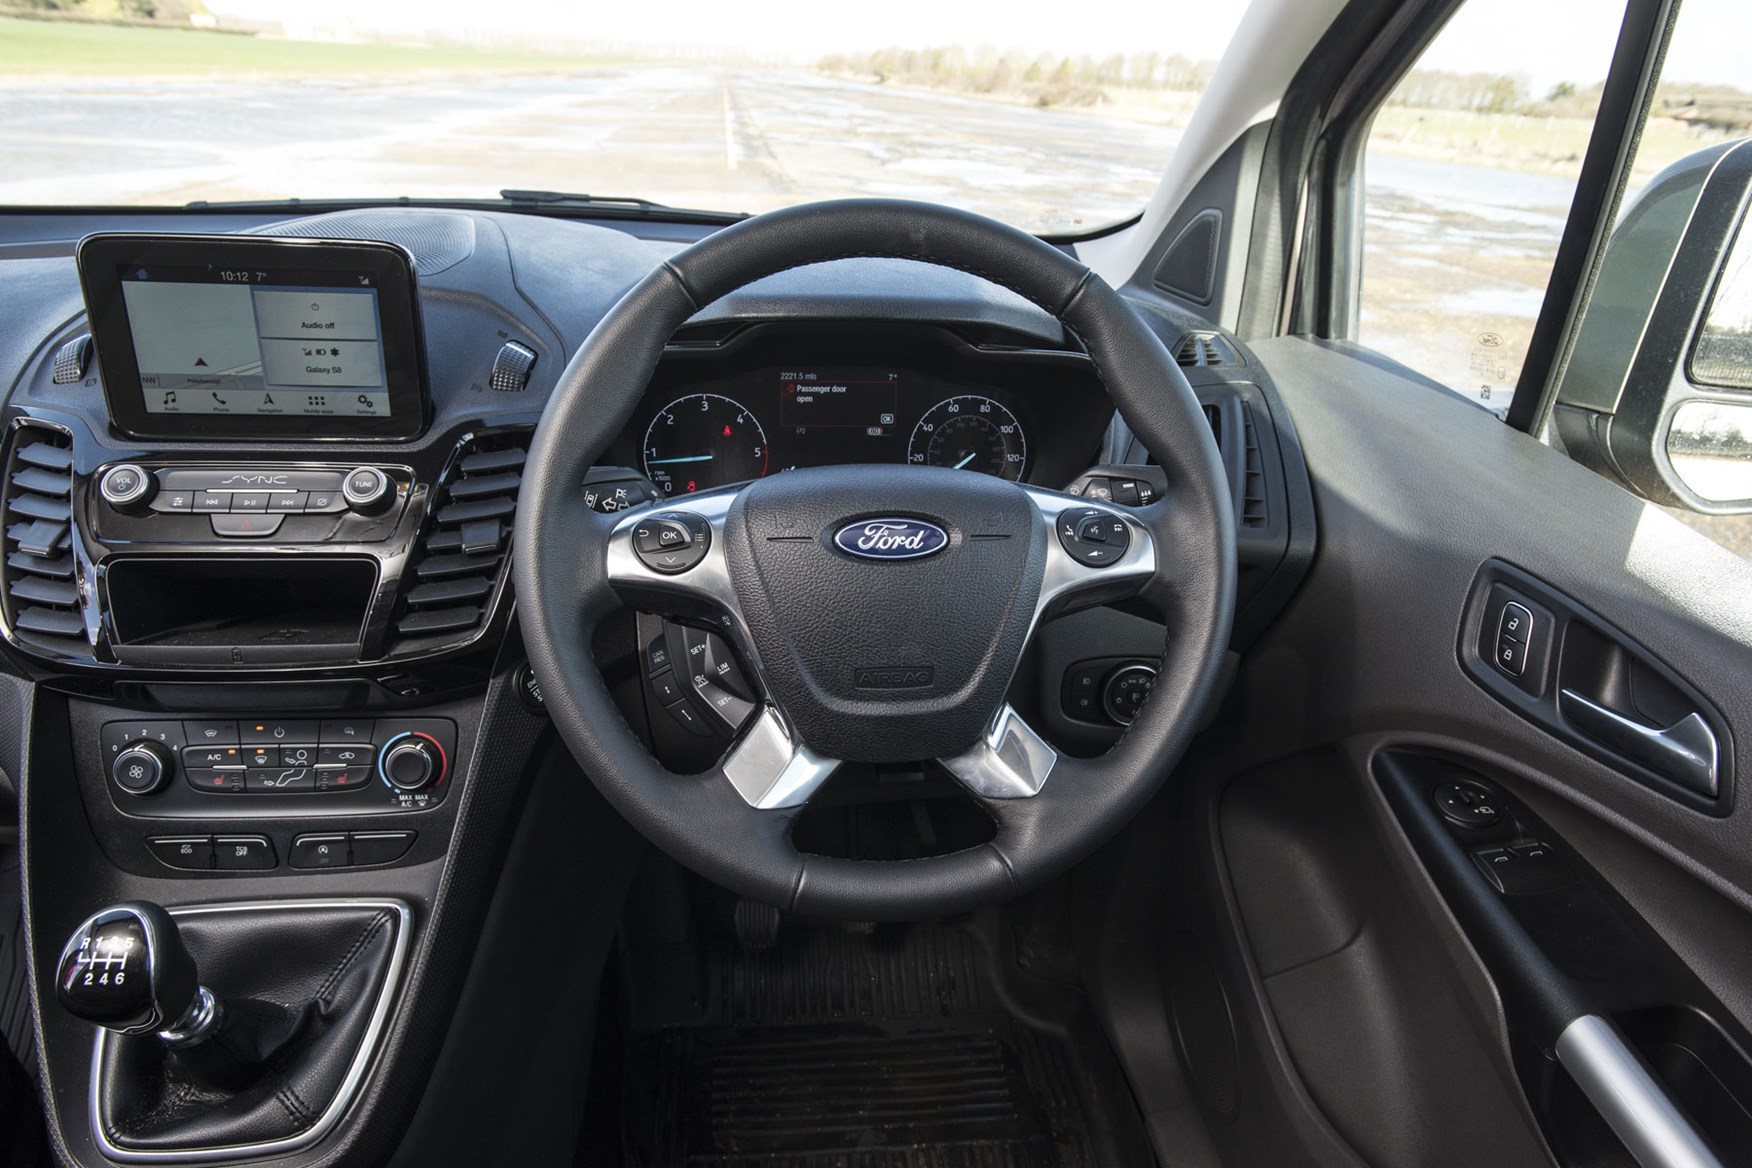 Ford Transit Connect review - 2018 cab interior, steering wheel and dials